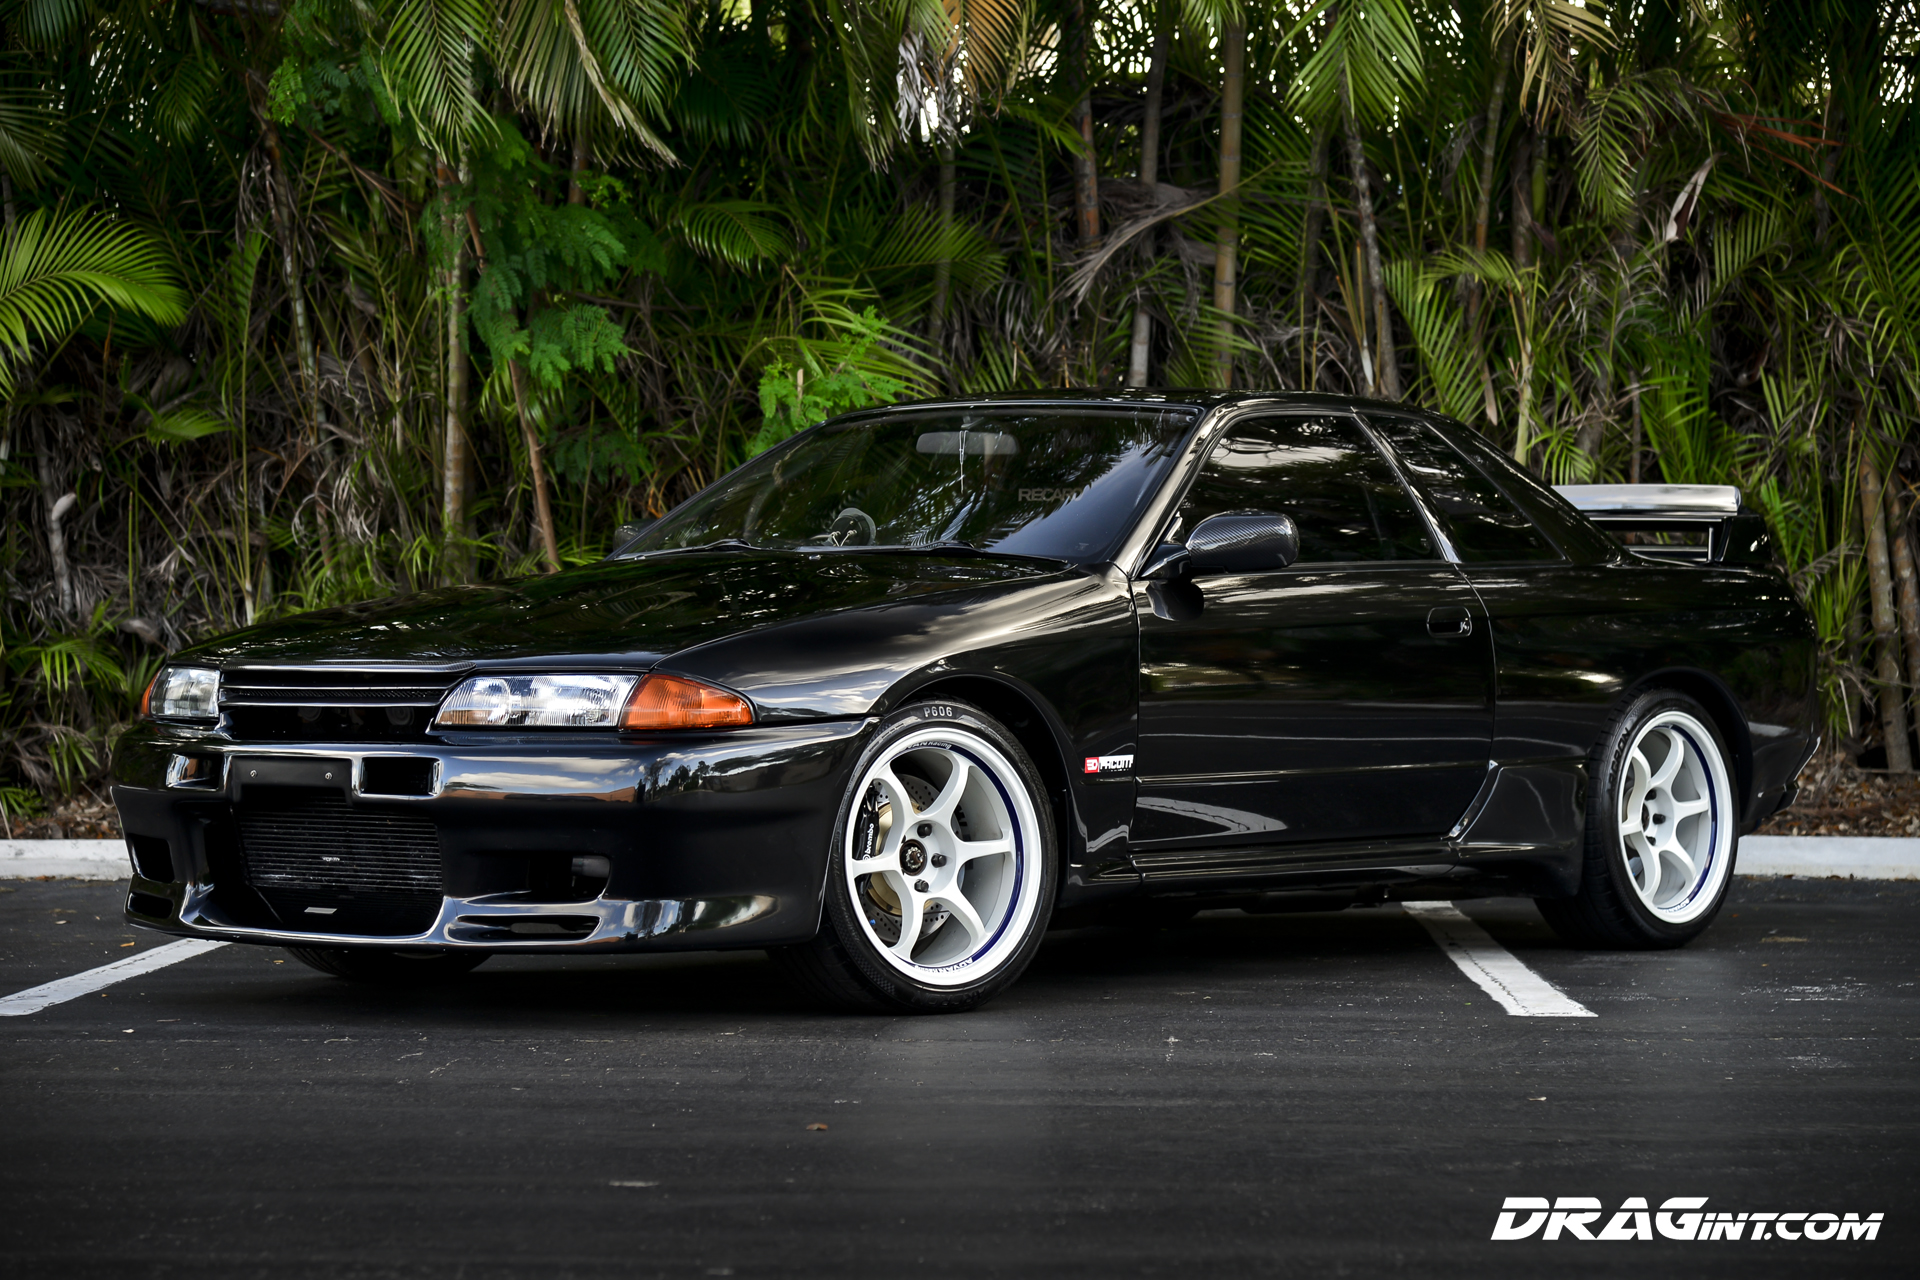 For Sale : Wicked R32 Skyline GTR – Road Race Spec with 450HP 2 9L